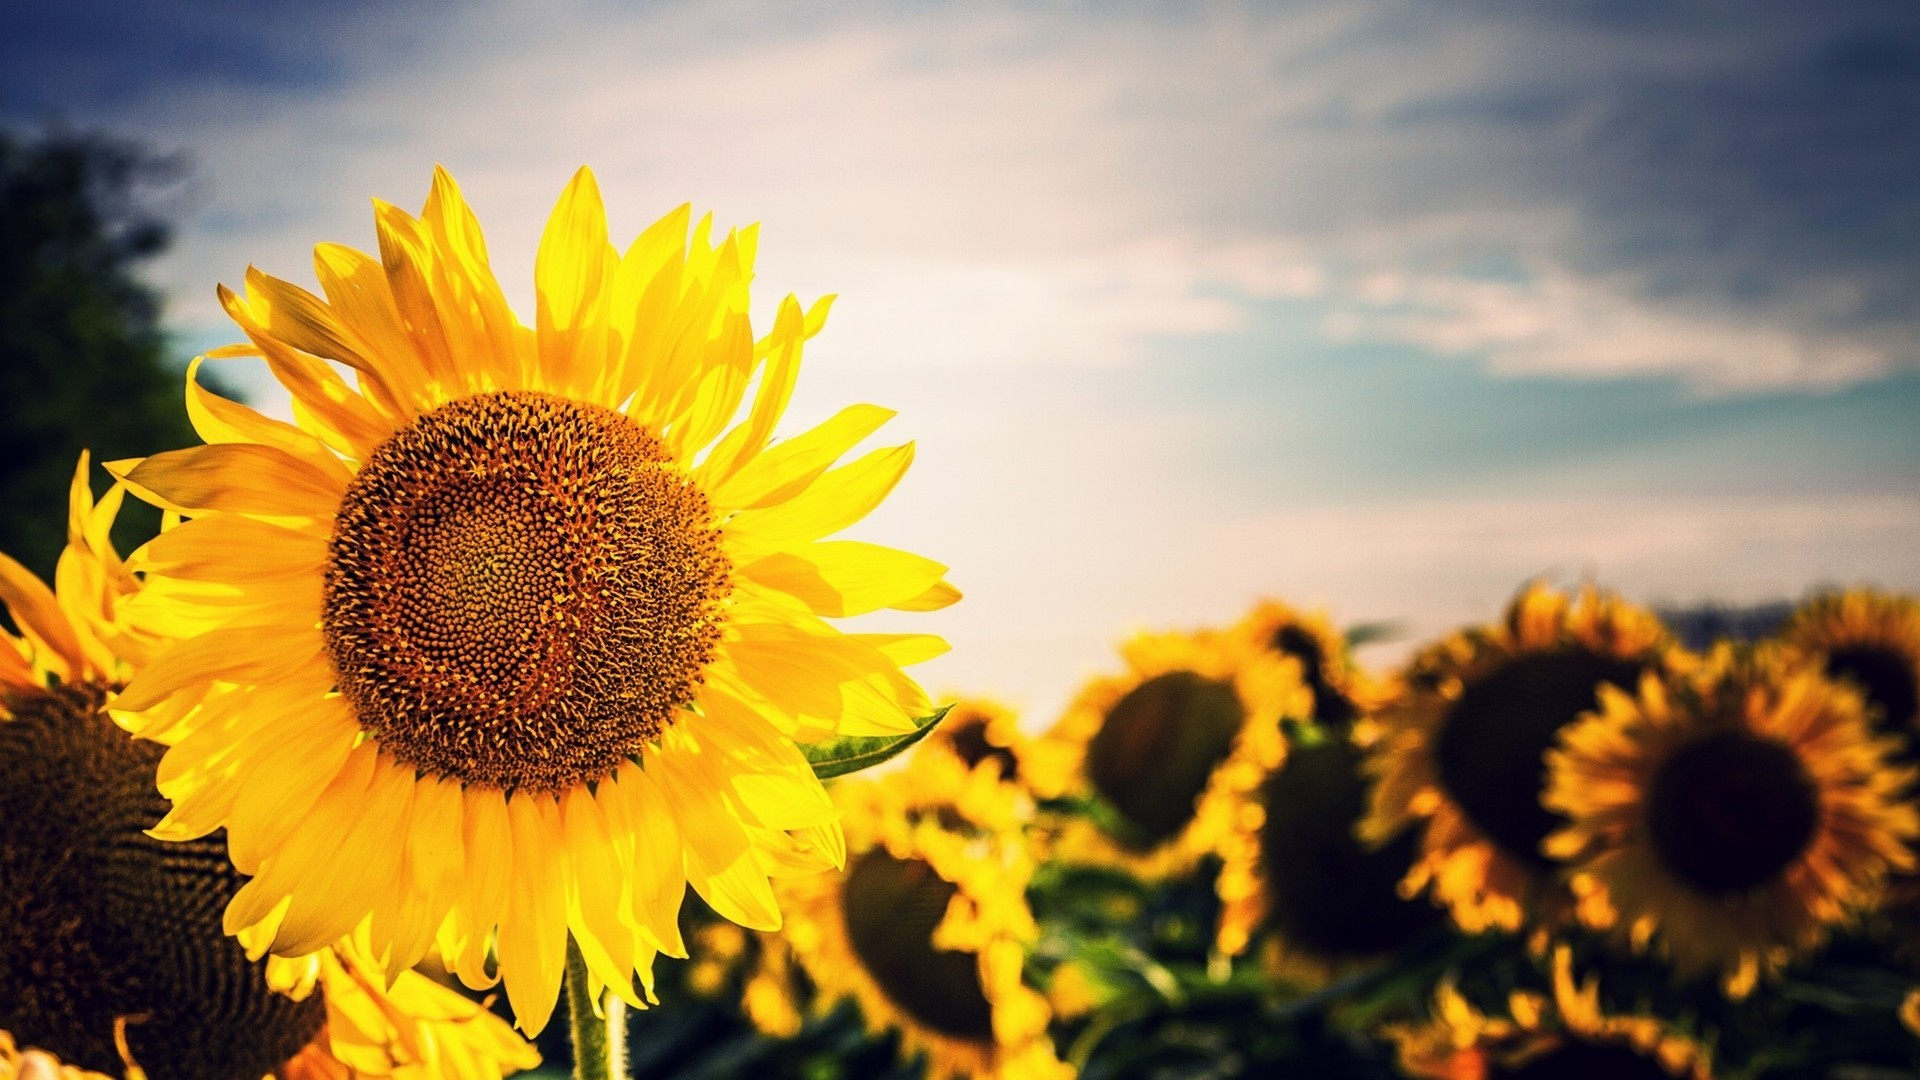 The sunflower wallpapers image that you can use for decorating